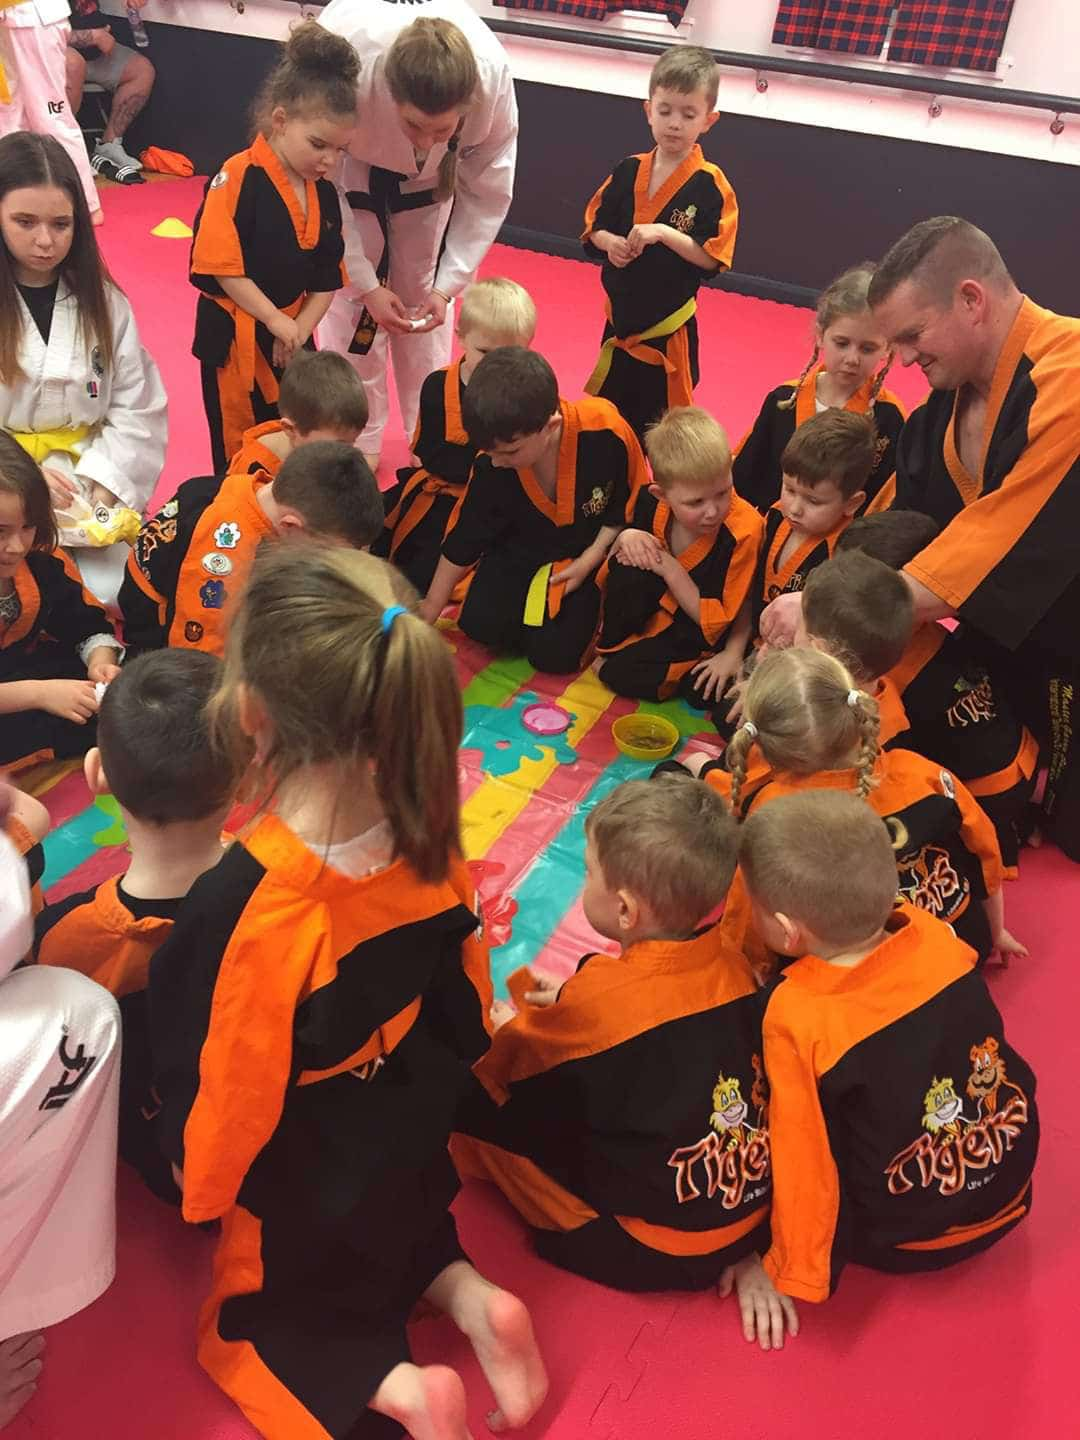 Young taekwon-do students taking a break to enjoy playing a game with their master